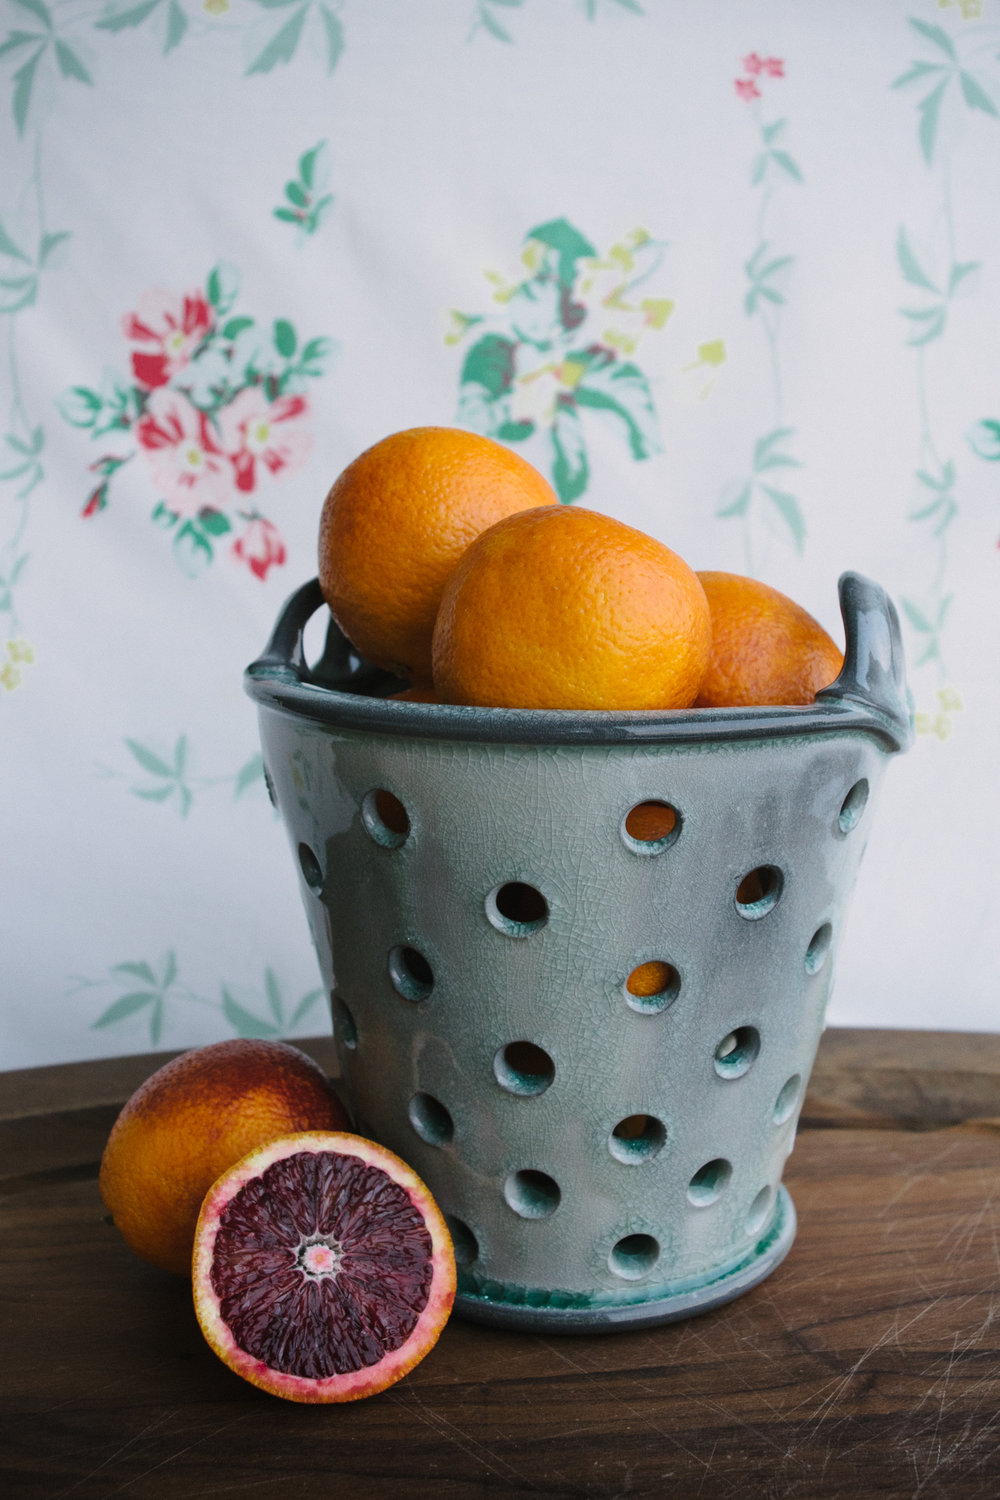 Blood_oranges-101.jpg